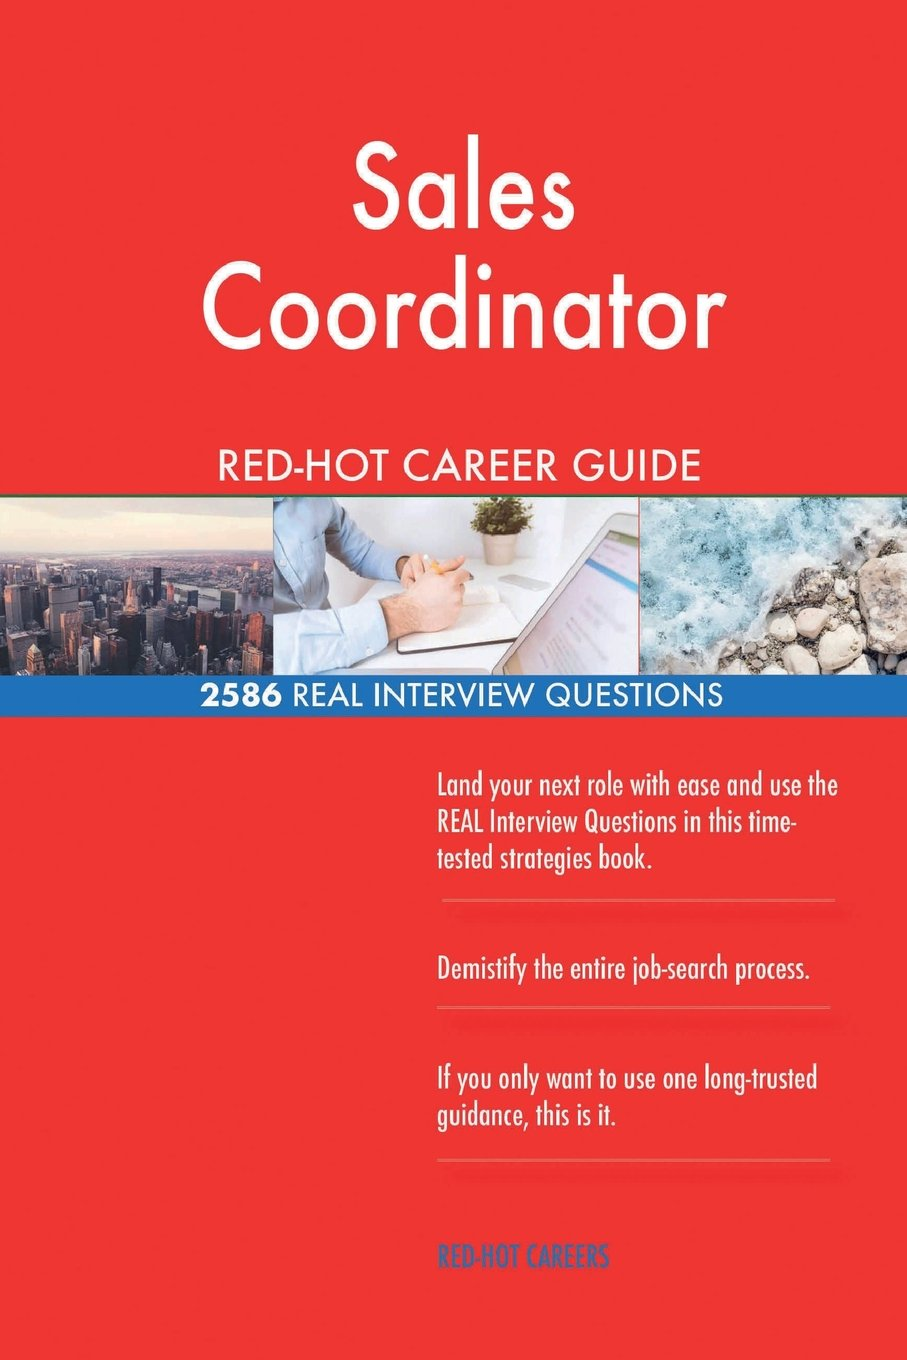 sales coordinator red hot career guide 2586 real interview questions red hot careers 9781986674362 amazoncom books